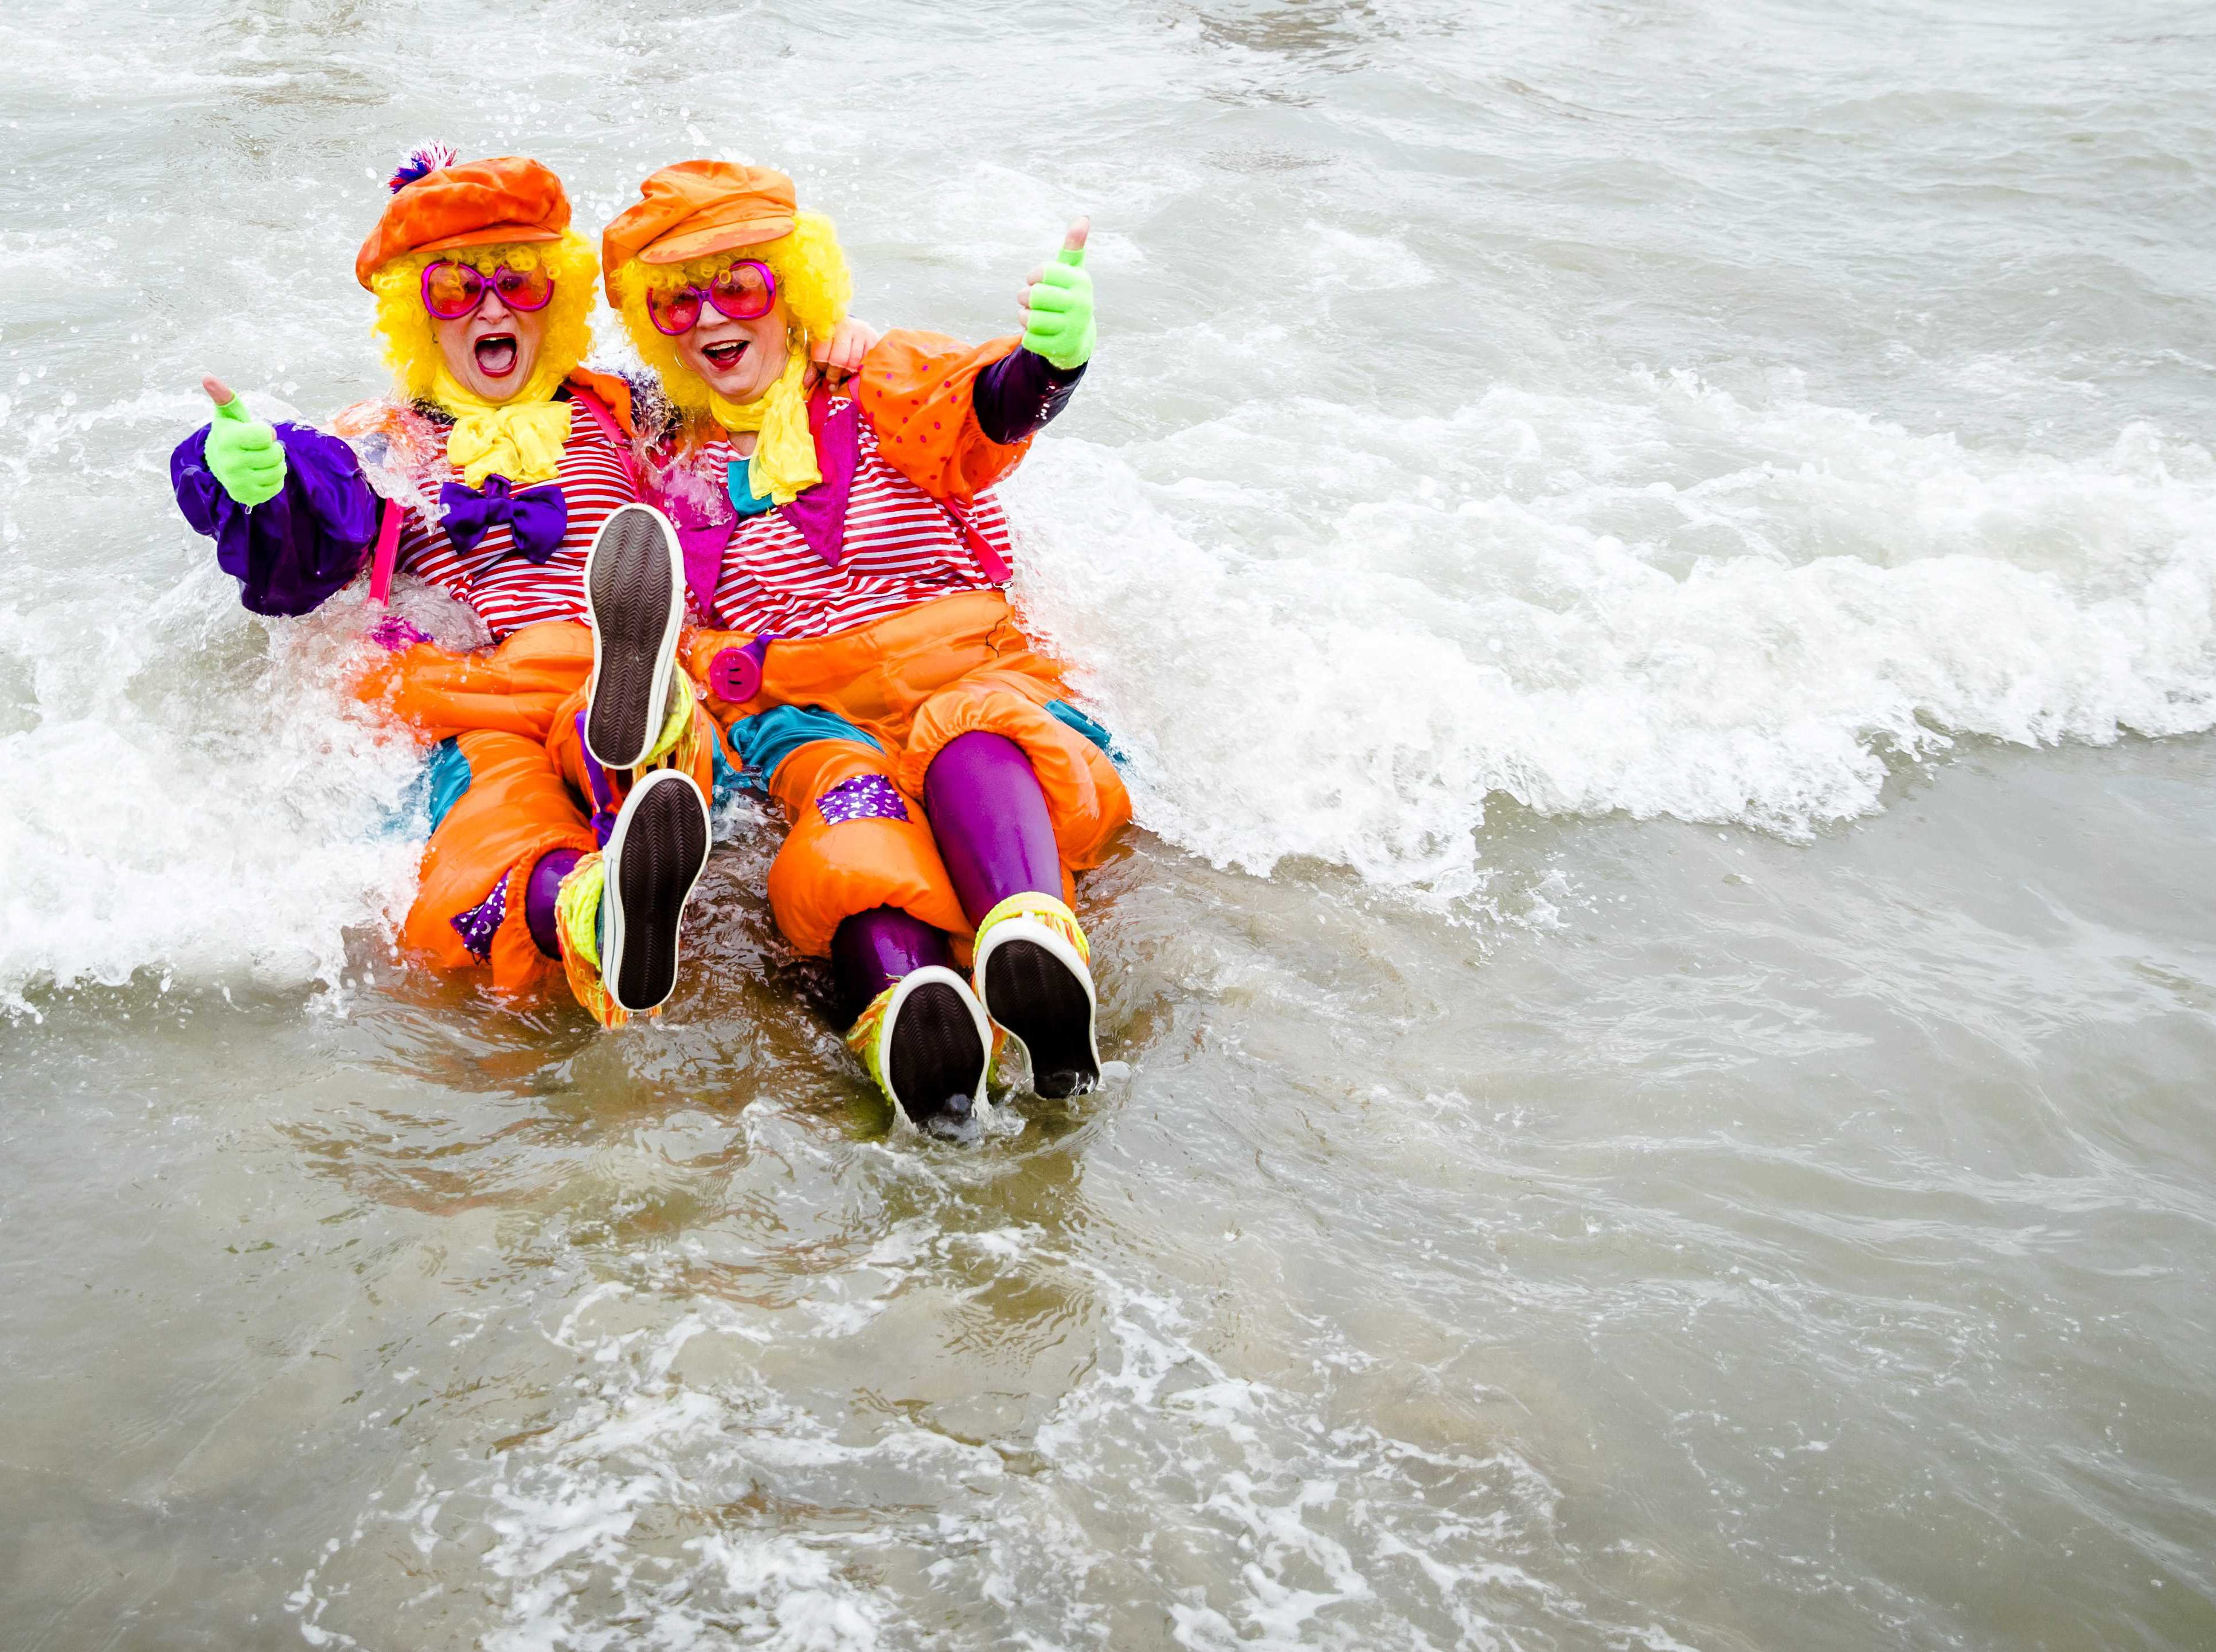 Costumed participants sit on the beach during the New Year Dive event in The North Sea, in Scheveningen, near The Hague, The Netherlands on Jan. 1, 2019.